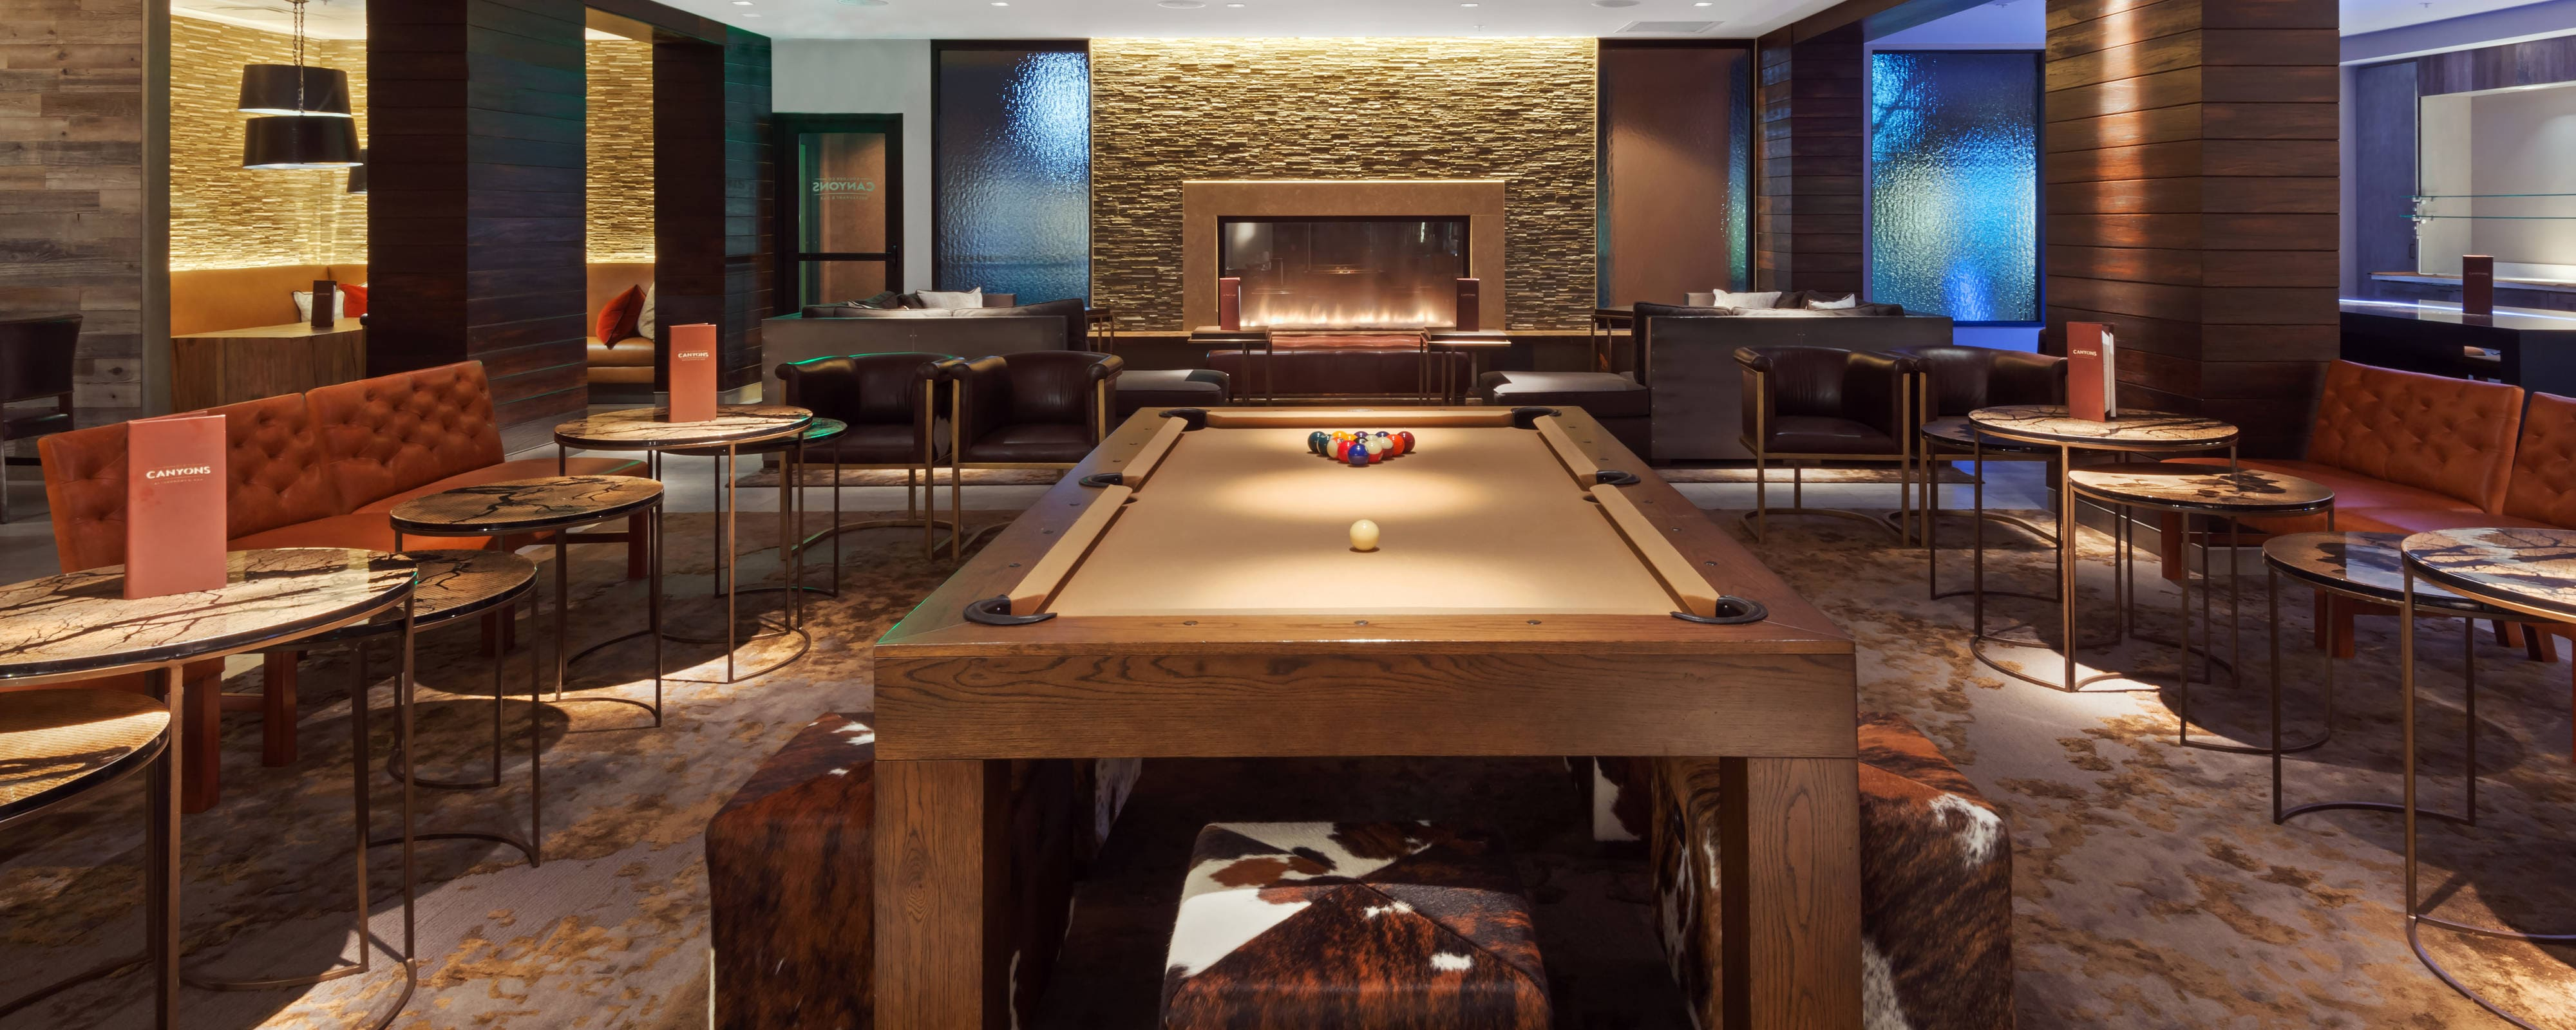 Pool Table, fireplace, seating